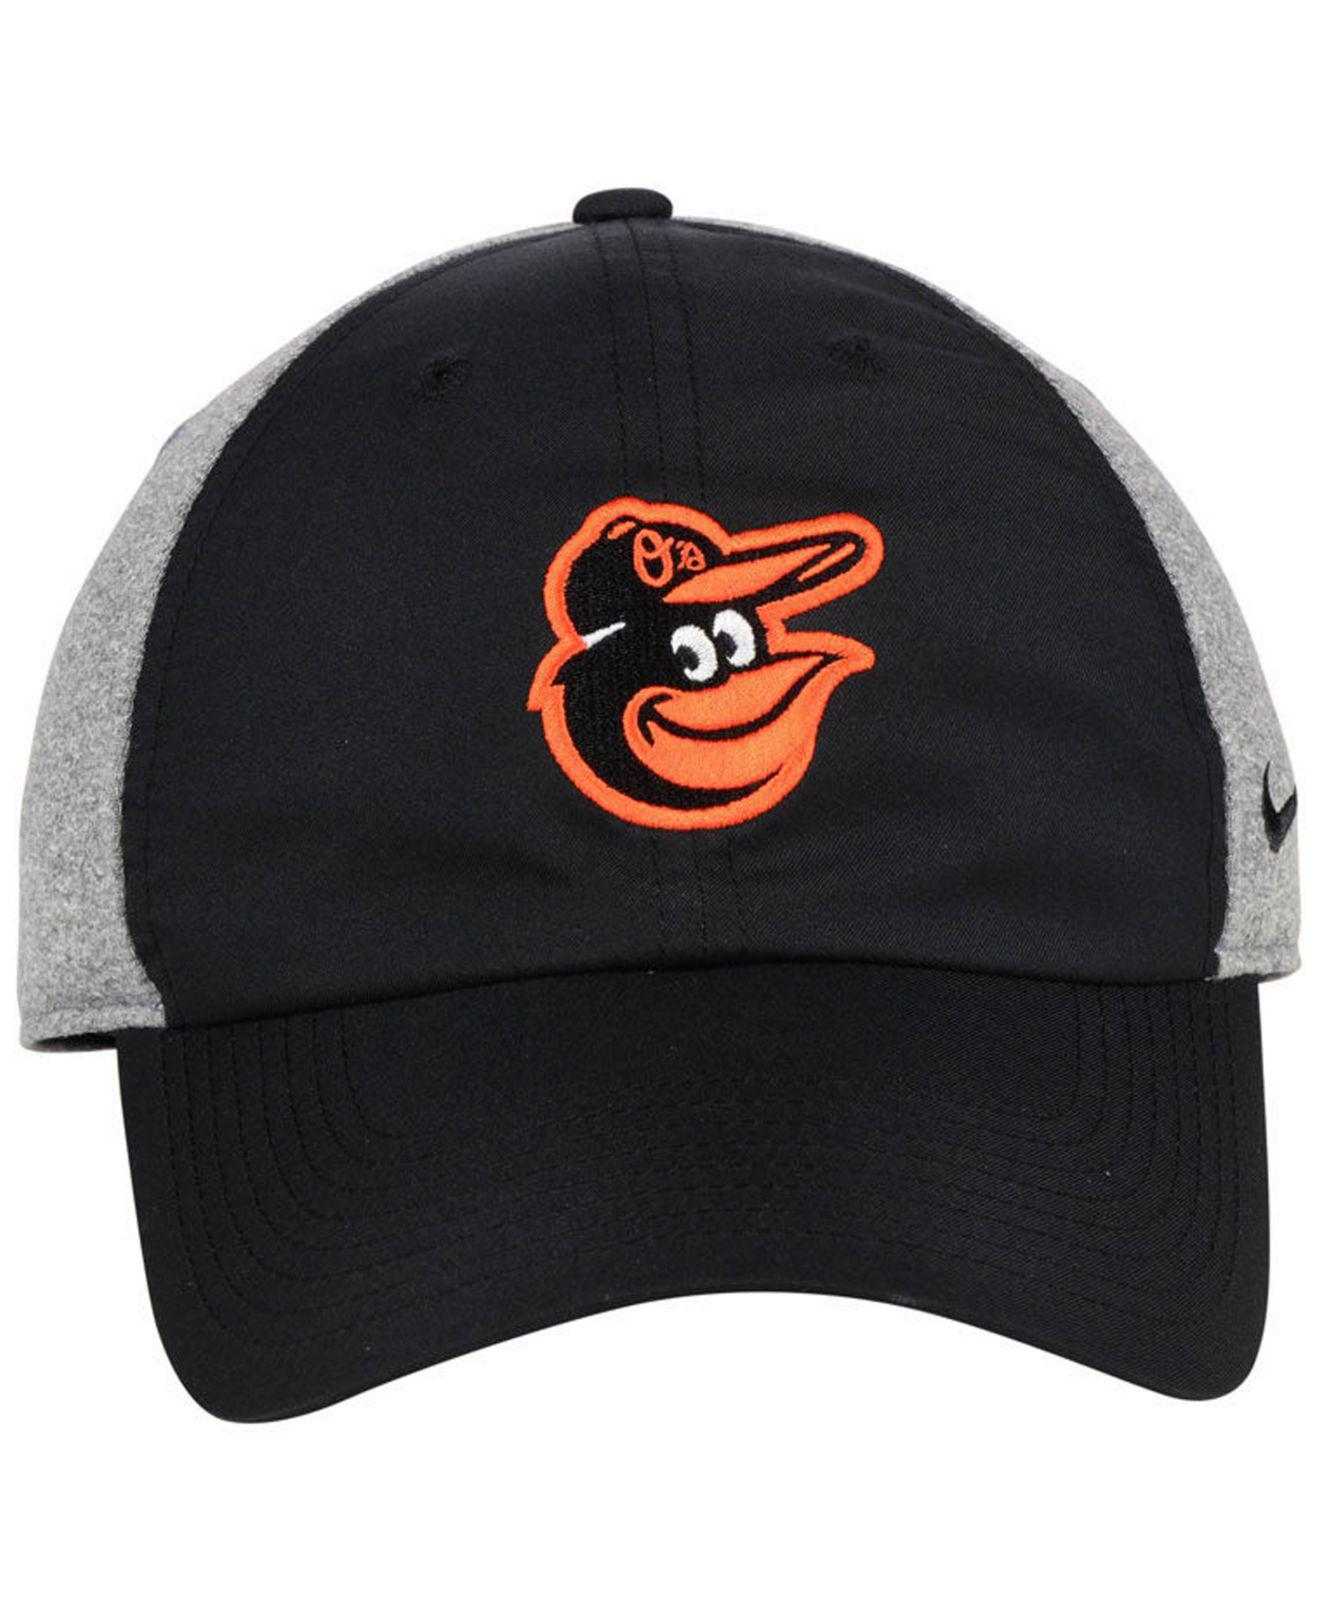 premium selection 48c71 9d174 norway lyst nike baltimore orioles new day legend cap in black for men  f8664 3f69c